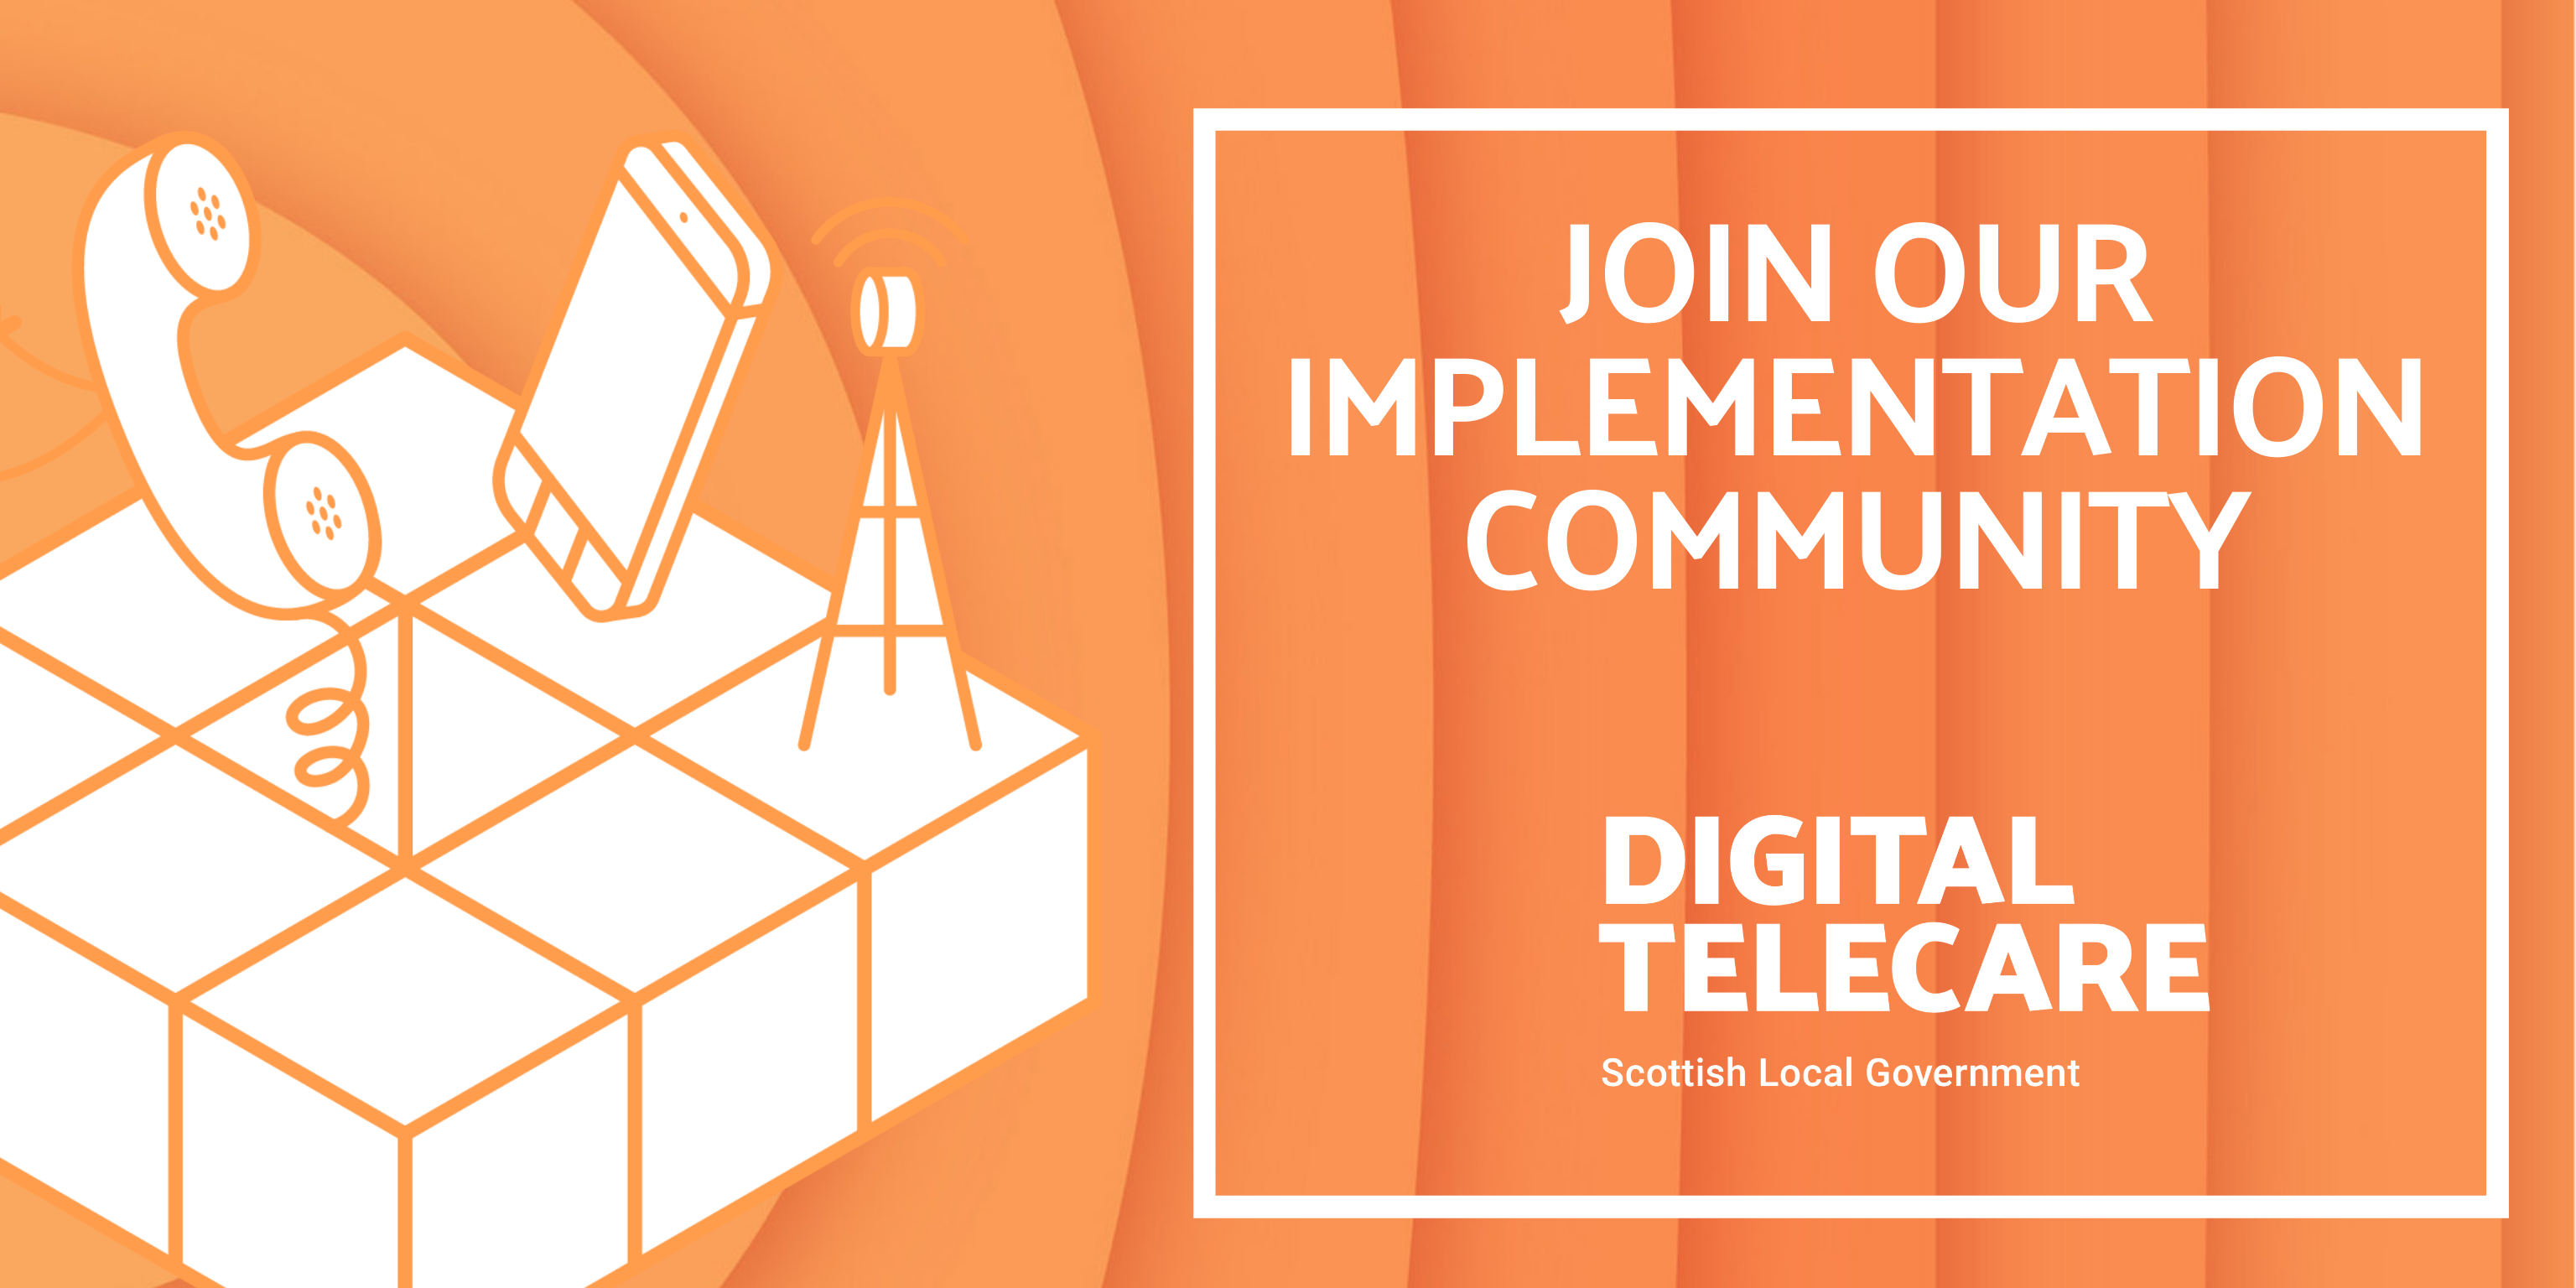 JOIN OUR IMPLEMENTATION COMMUNITY